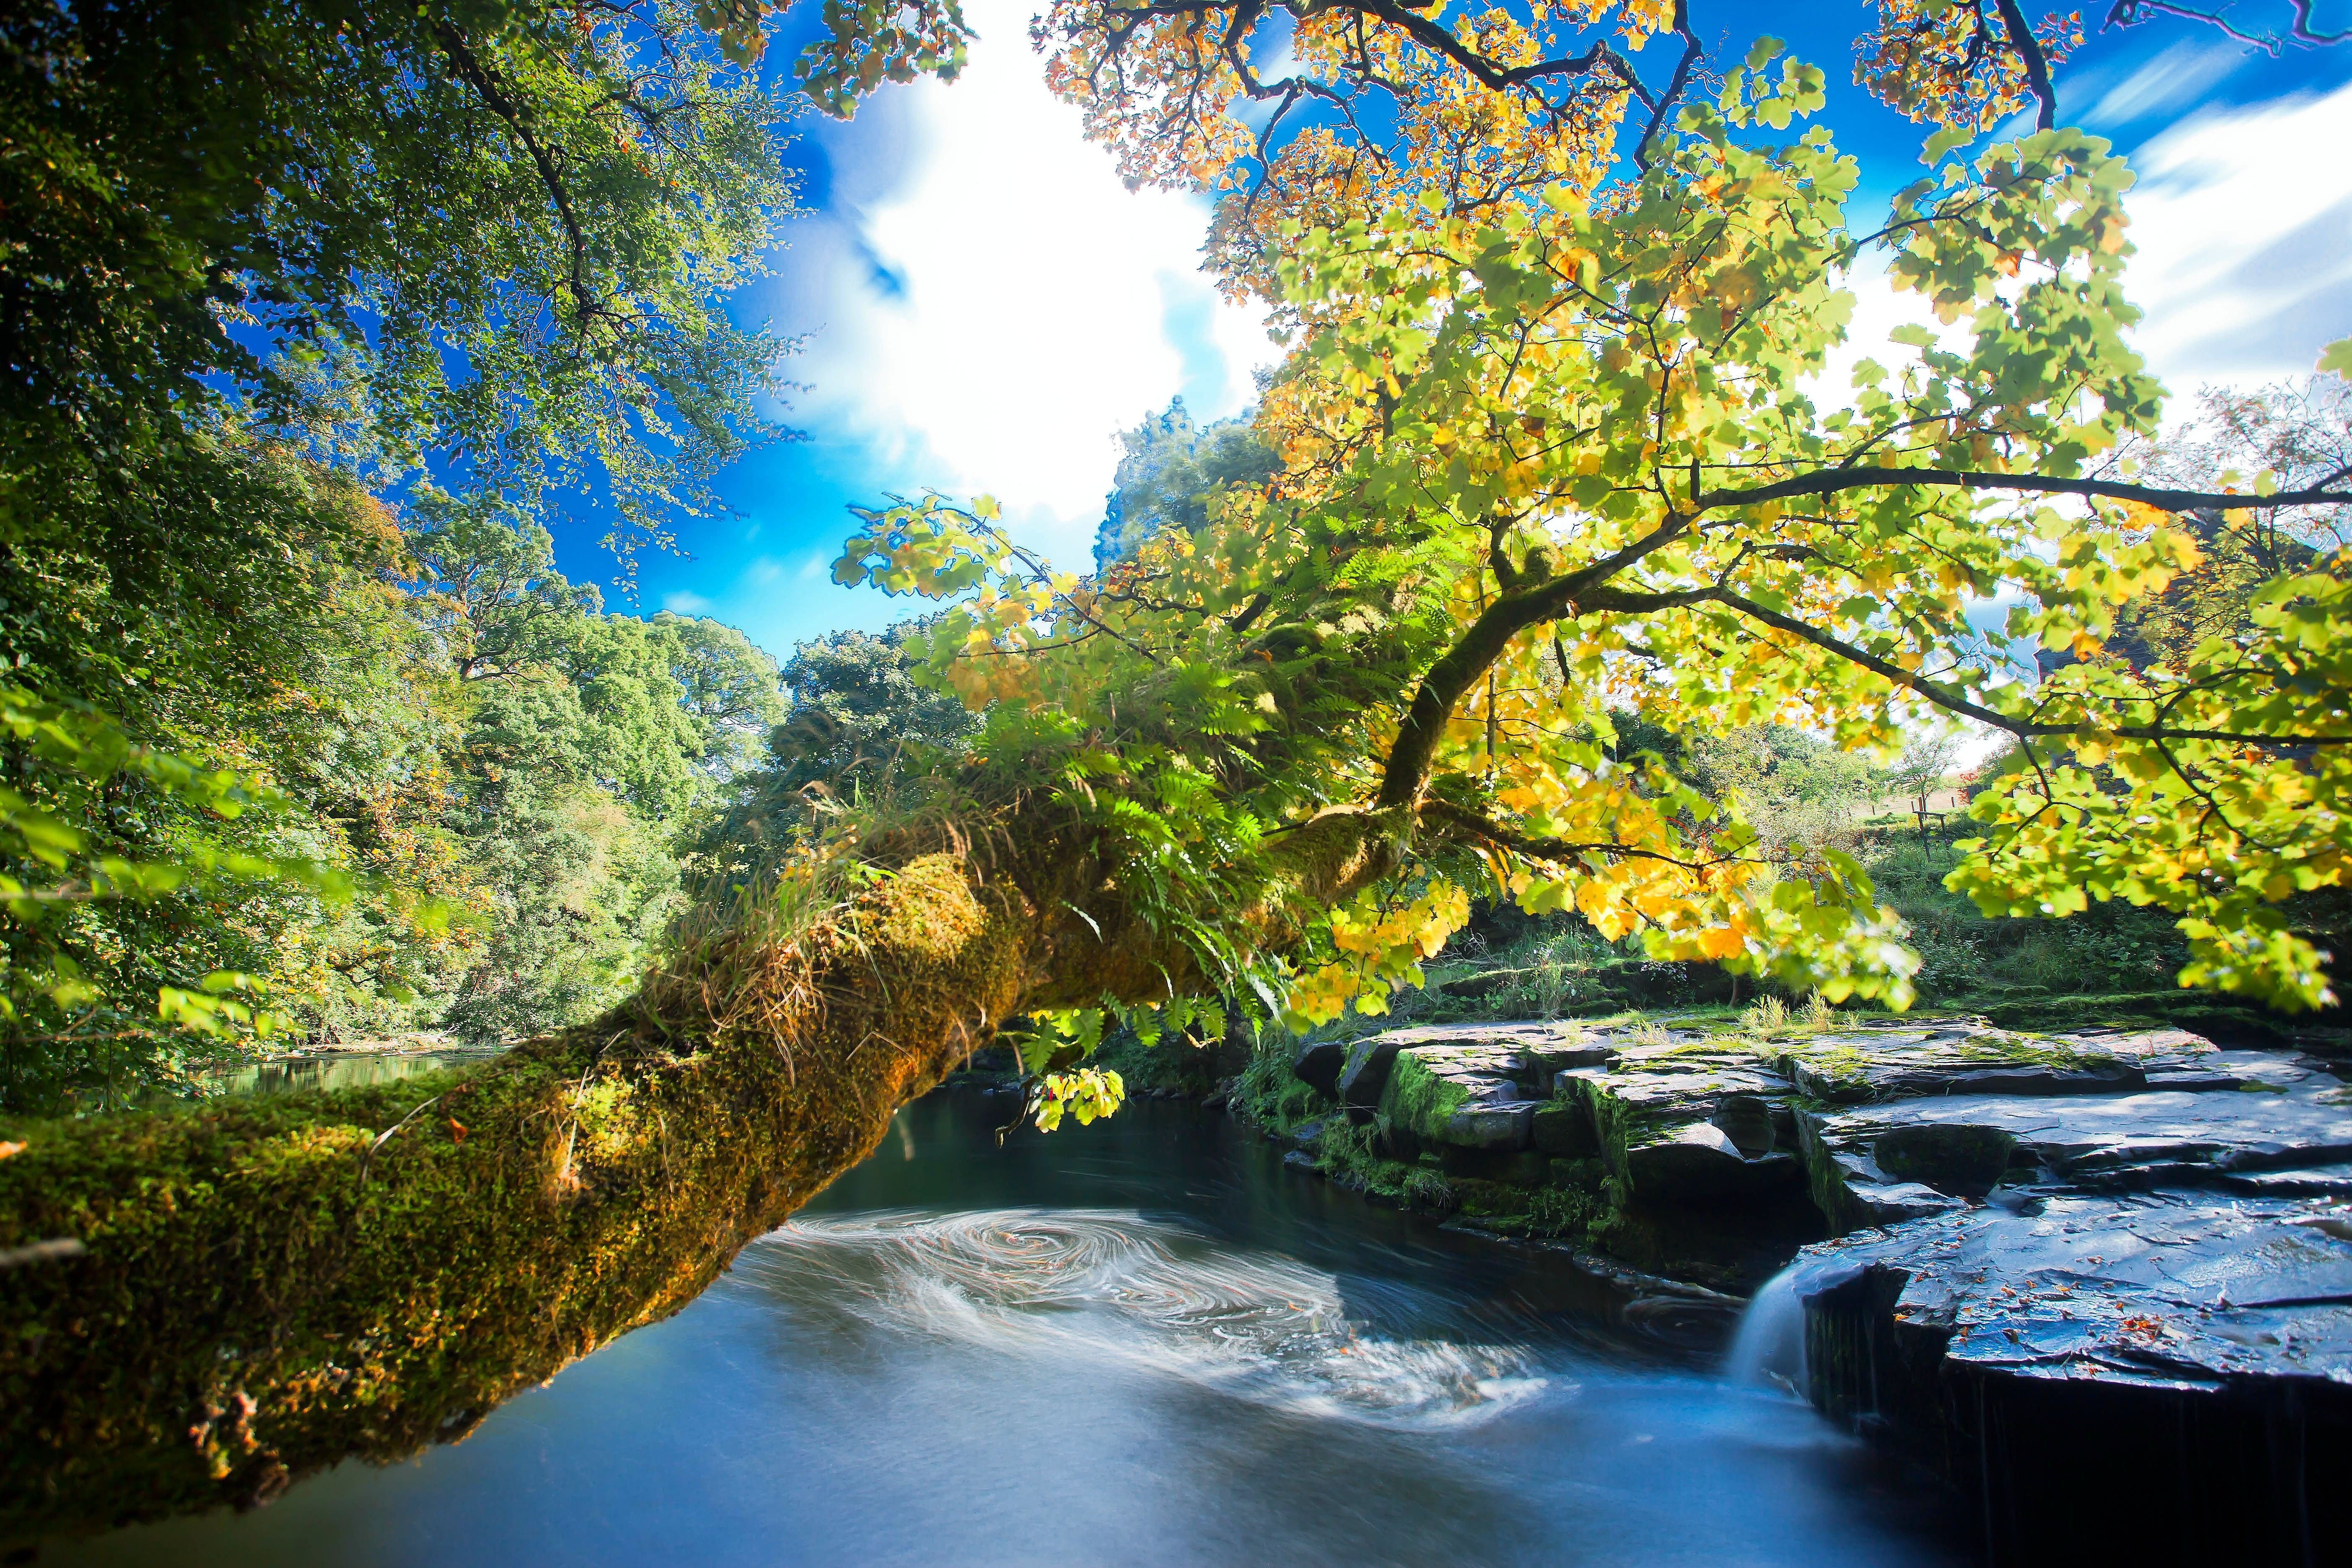 Hd Wallpapers For Windows 7 Download River Rocks Trees Waterfalls Autumn Nature Wallpaper